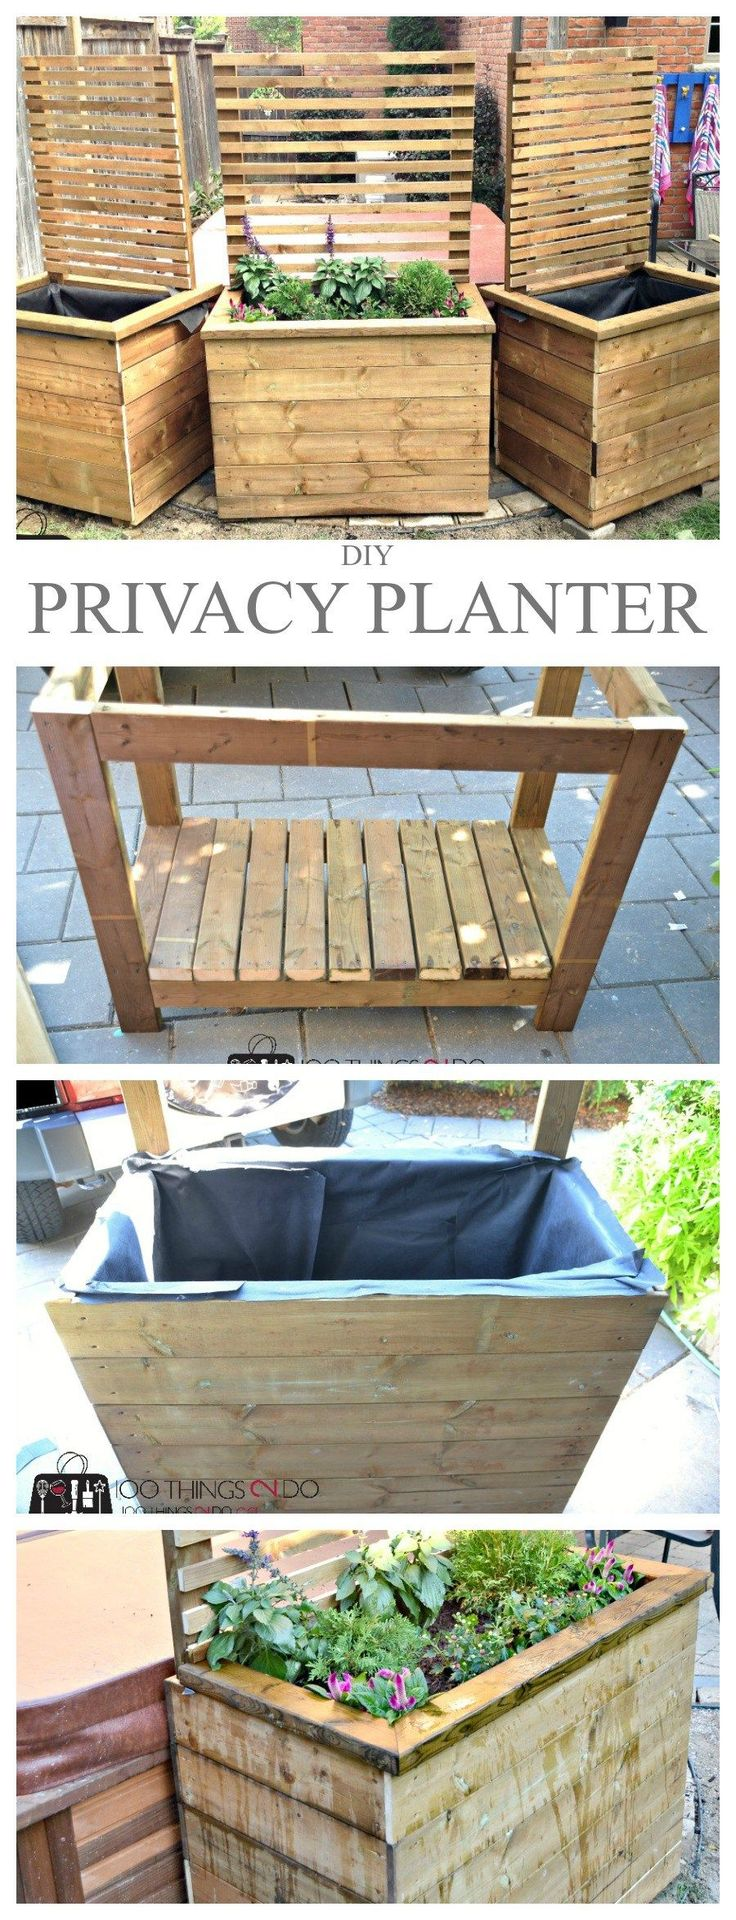 Diy Patio Privacy Screen Ideas: Best 25+ Patio Privacy Screen Ideas On Pinterest